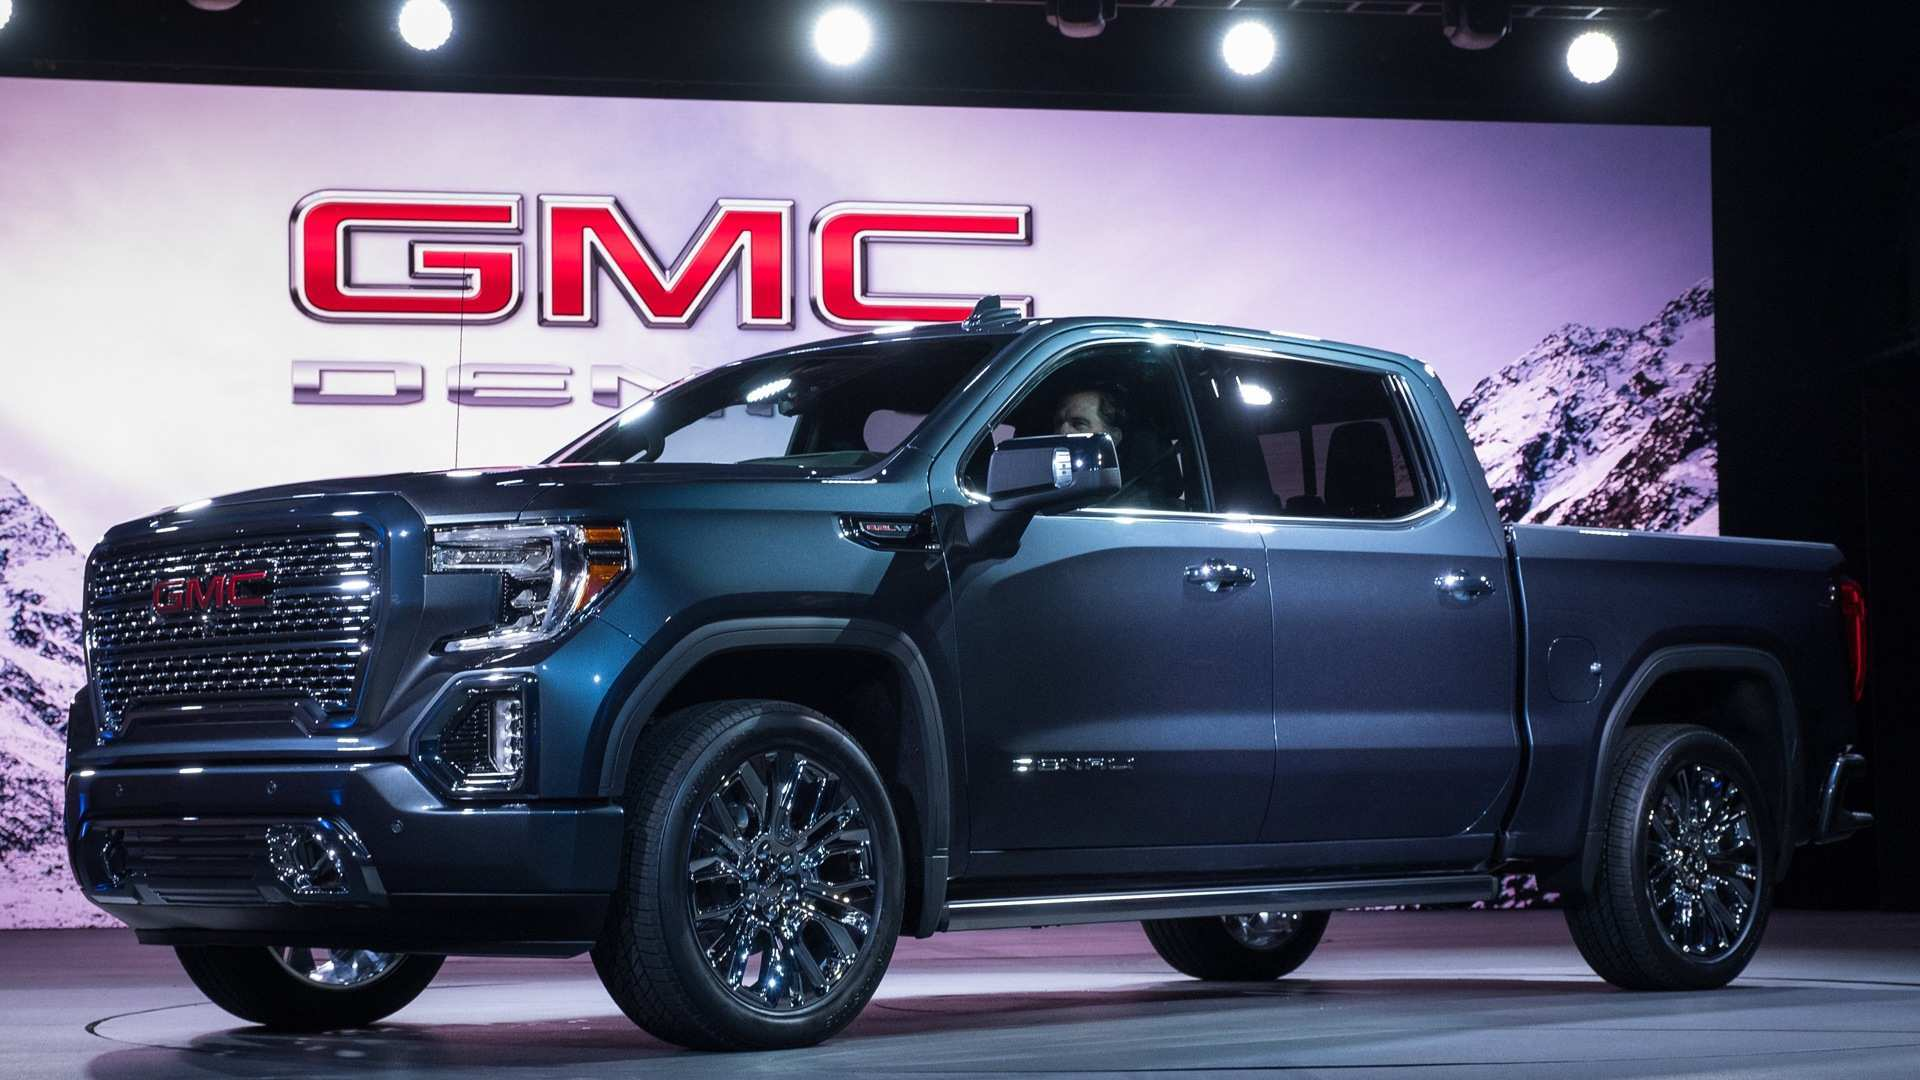 73 All New Gmc New Truck 2020 Spesification